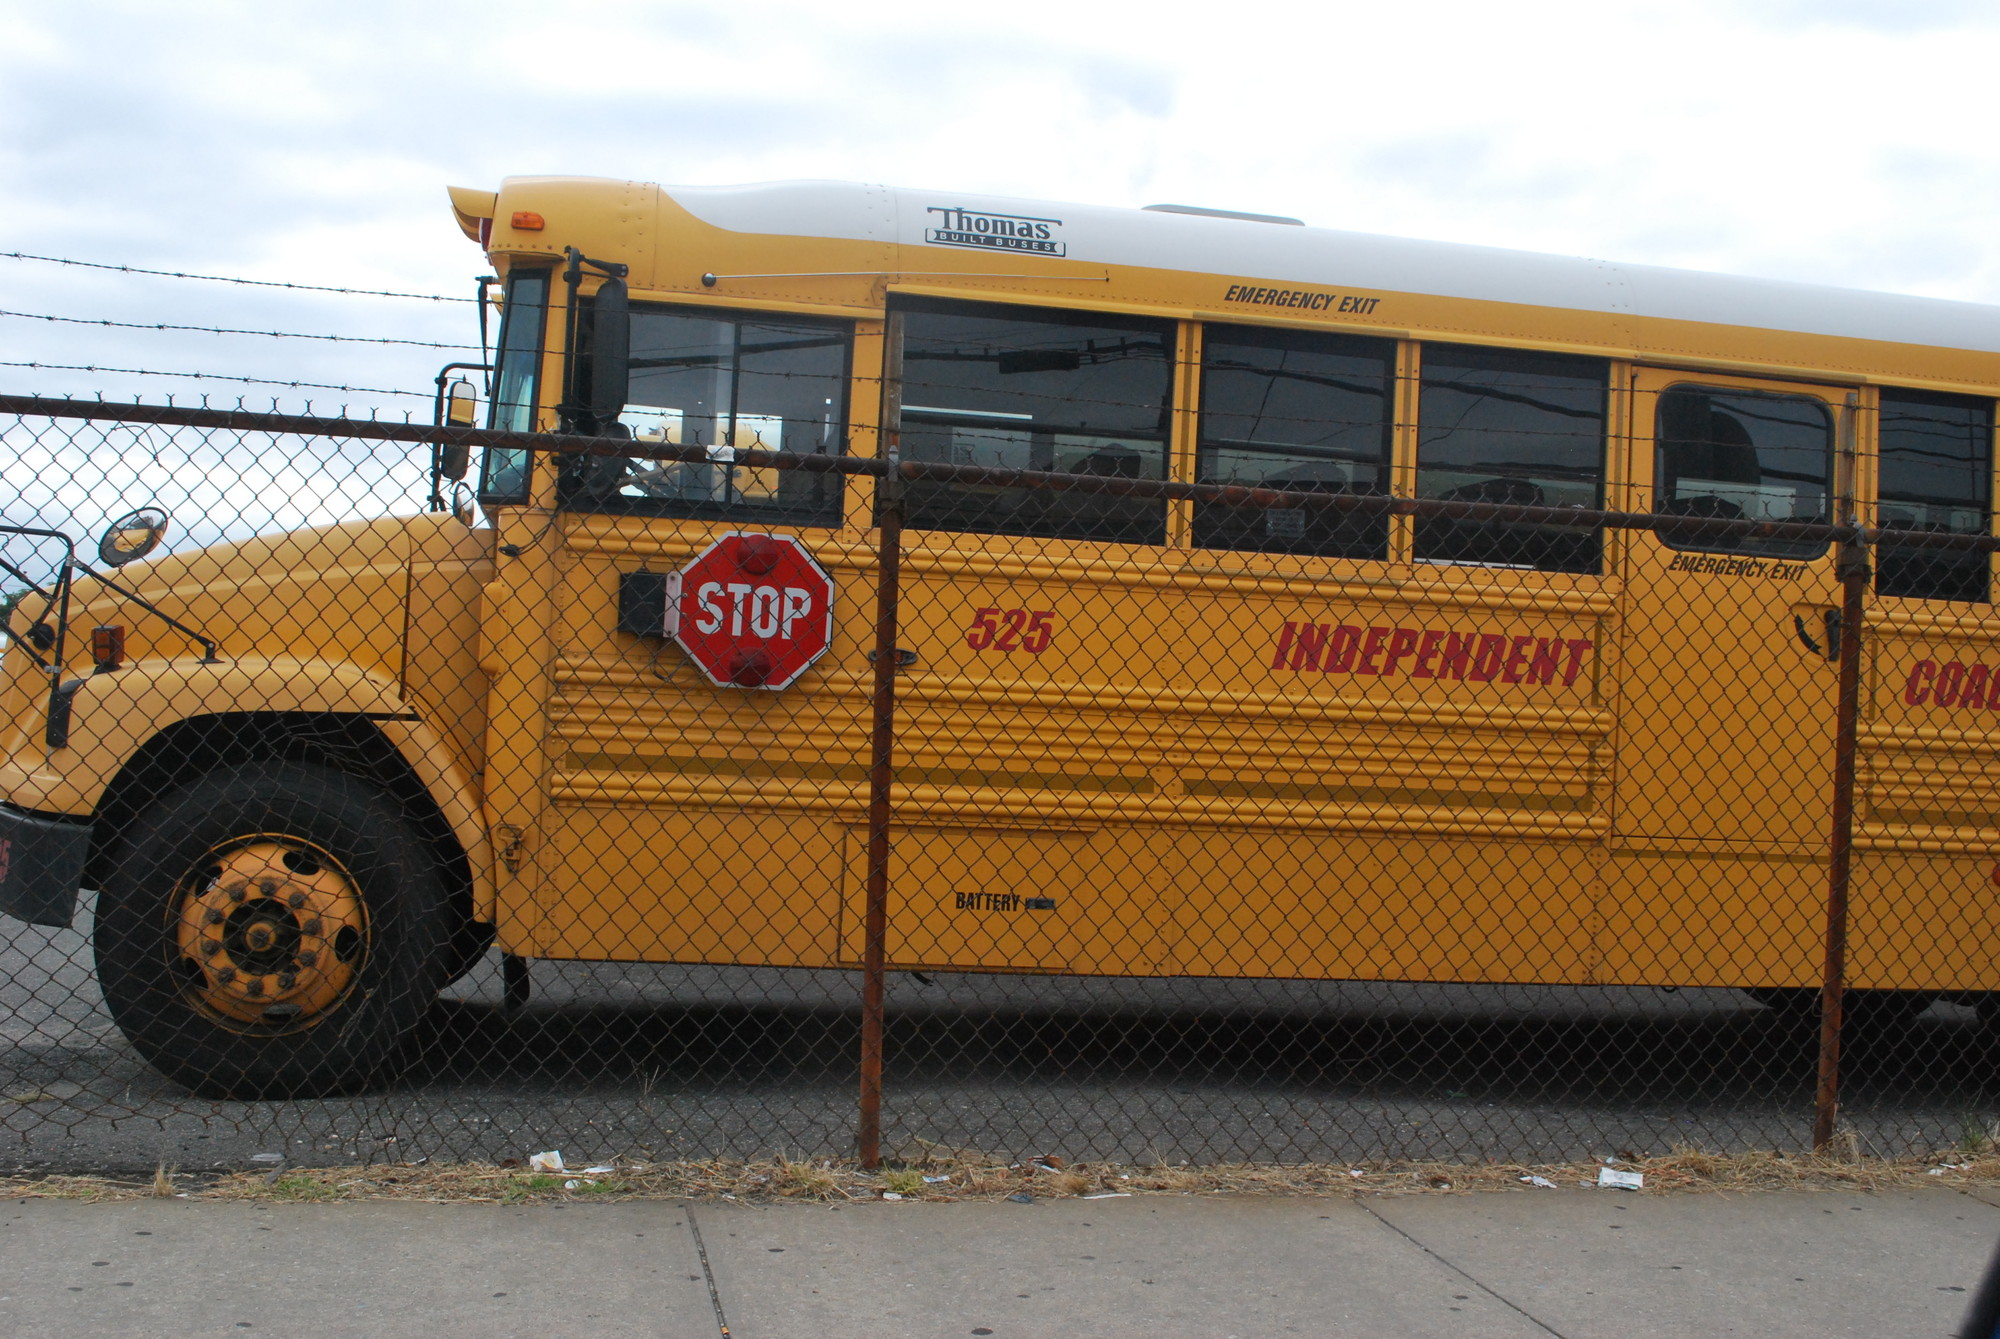 Yeshiva students who live in the Lawrence school district attend schools across Long Island including Brooklyn and Queens. Depending on the bus route, their trip could take up to 90 or more minutes or longer.